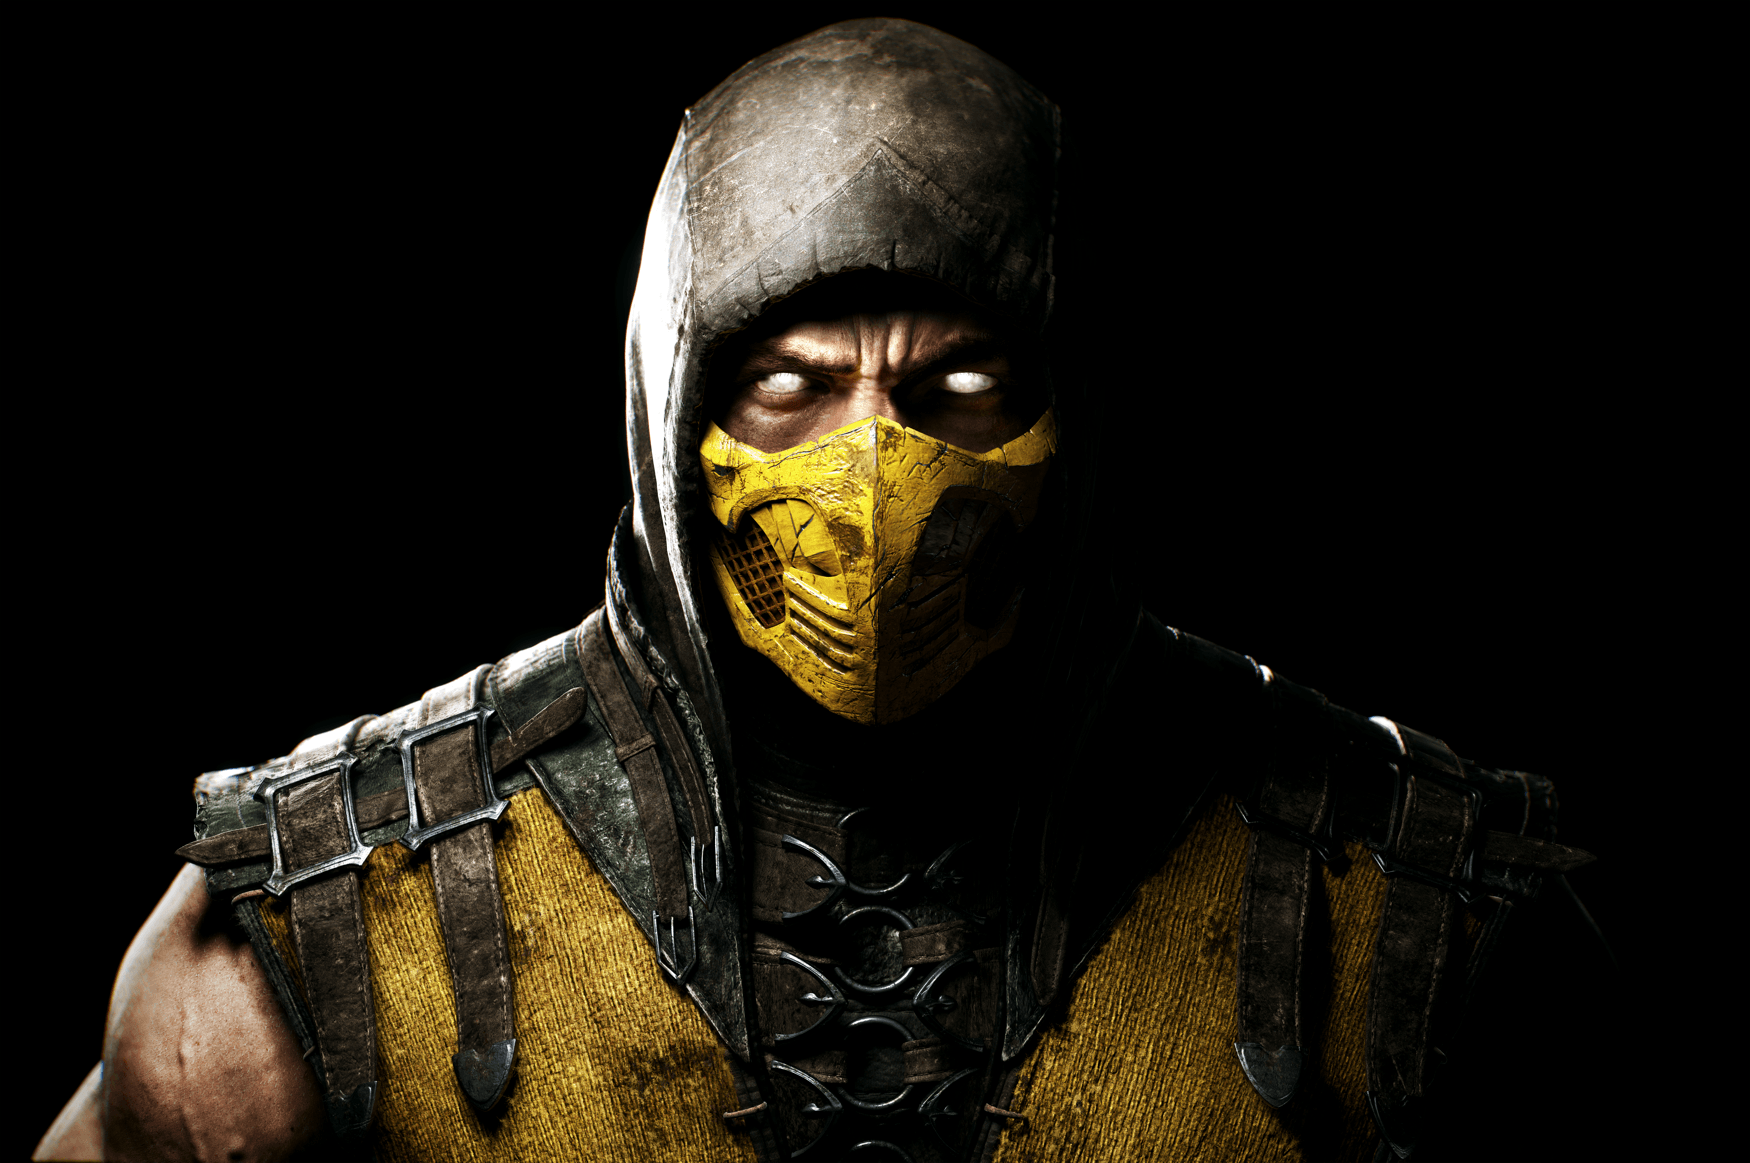 E3 2014: Mortal Kombat X Preview: The Most Brutal MK Yet